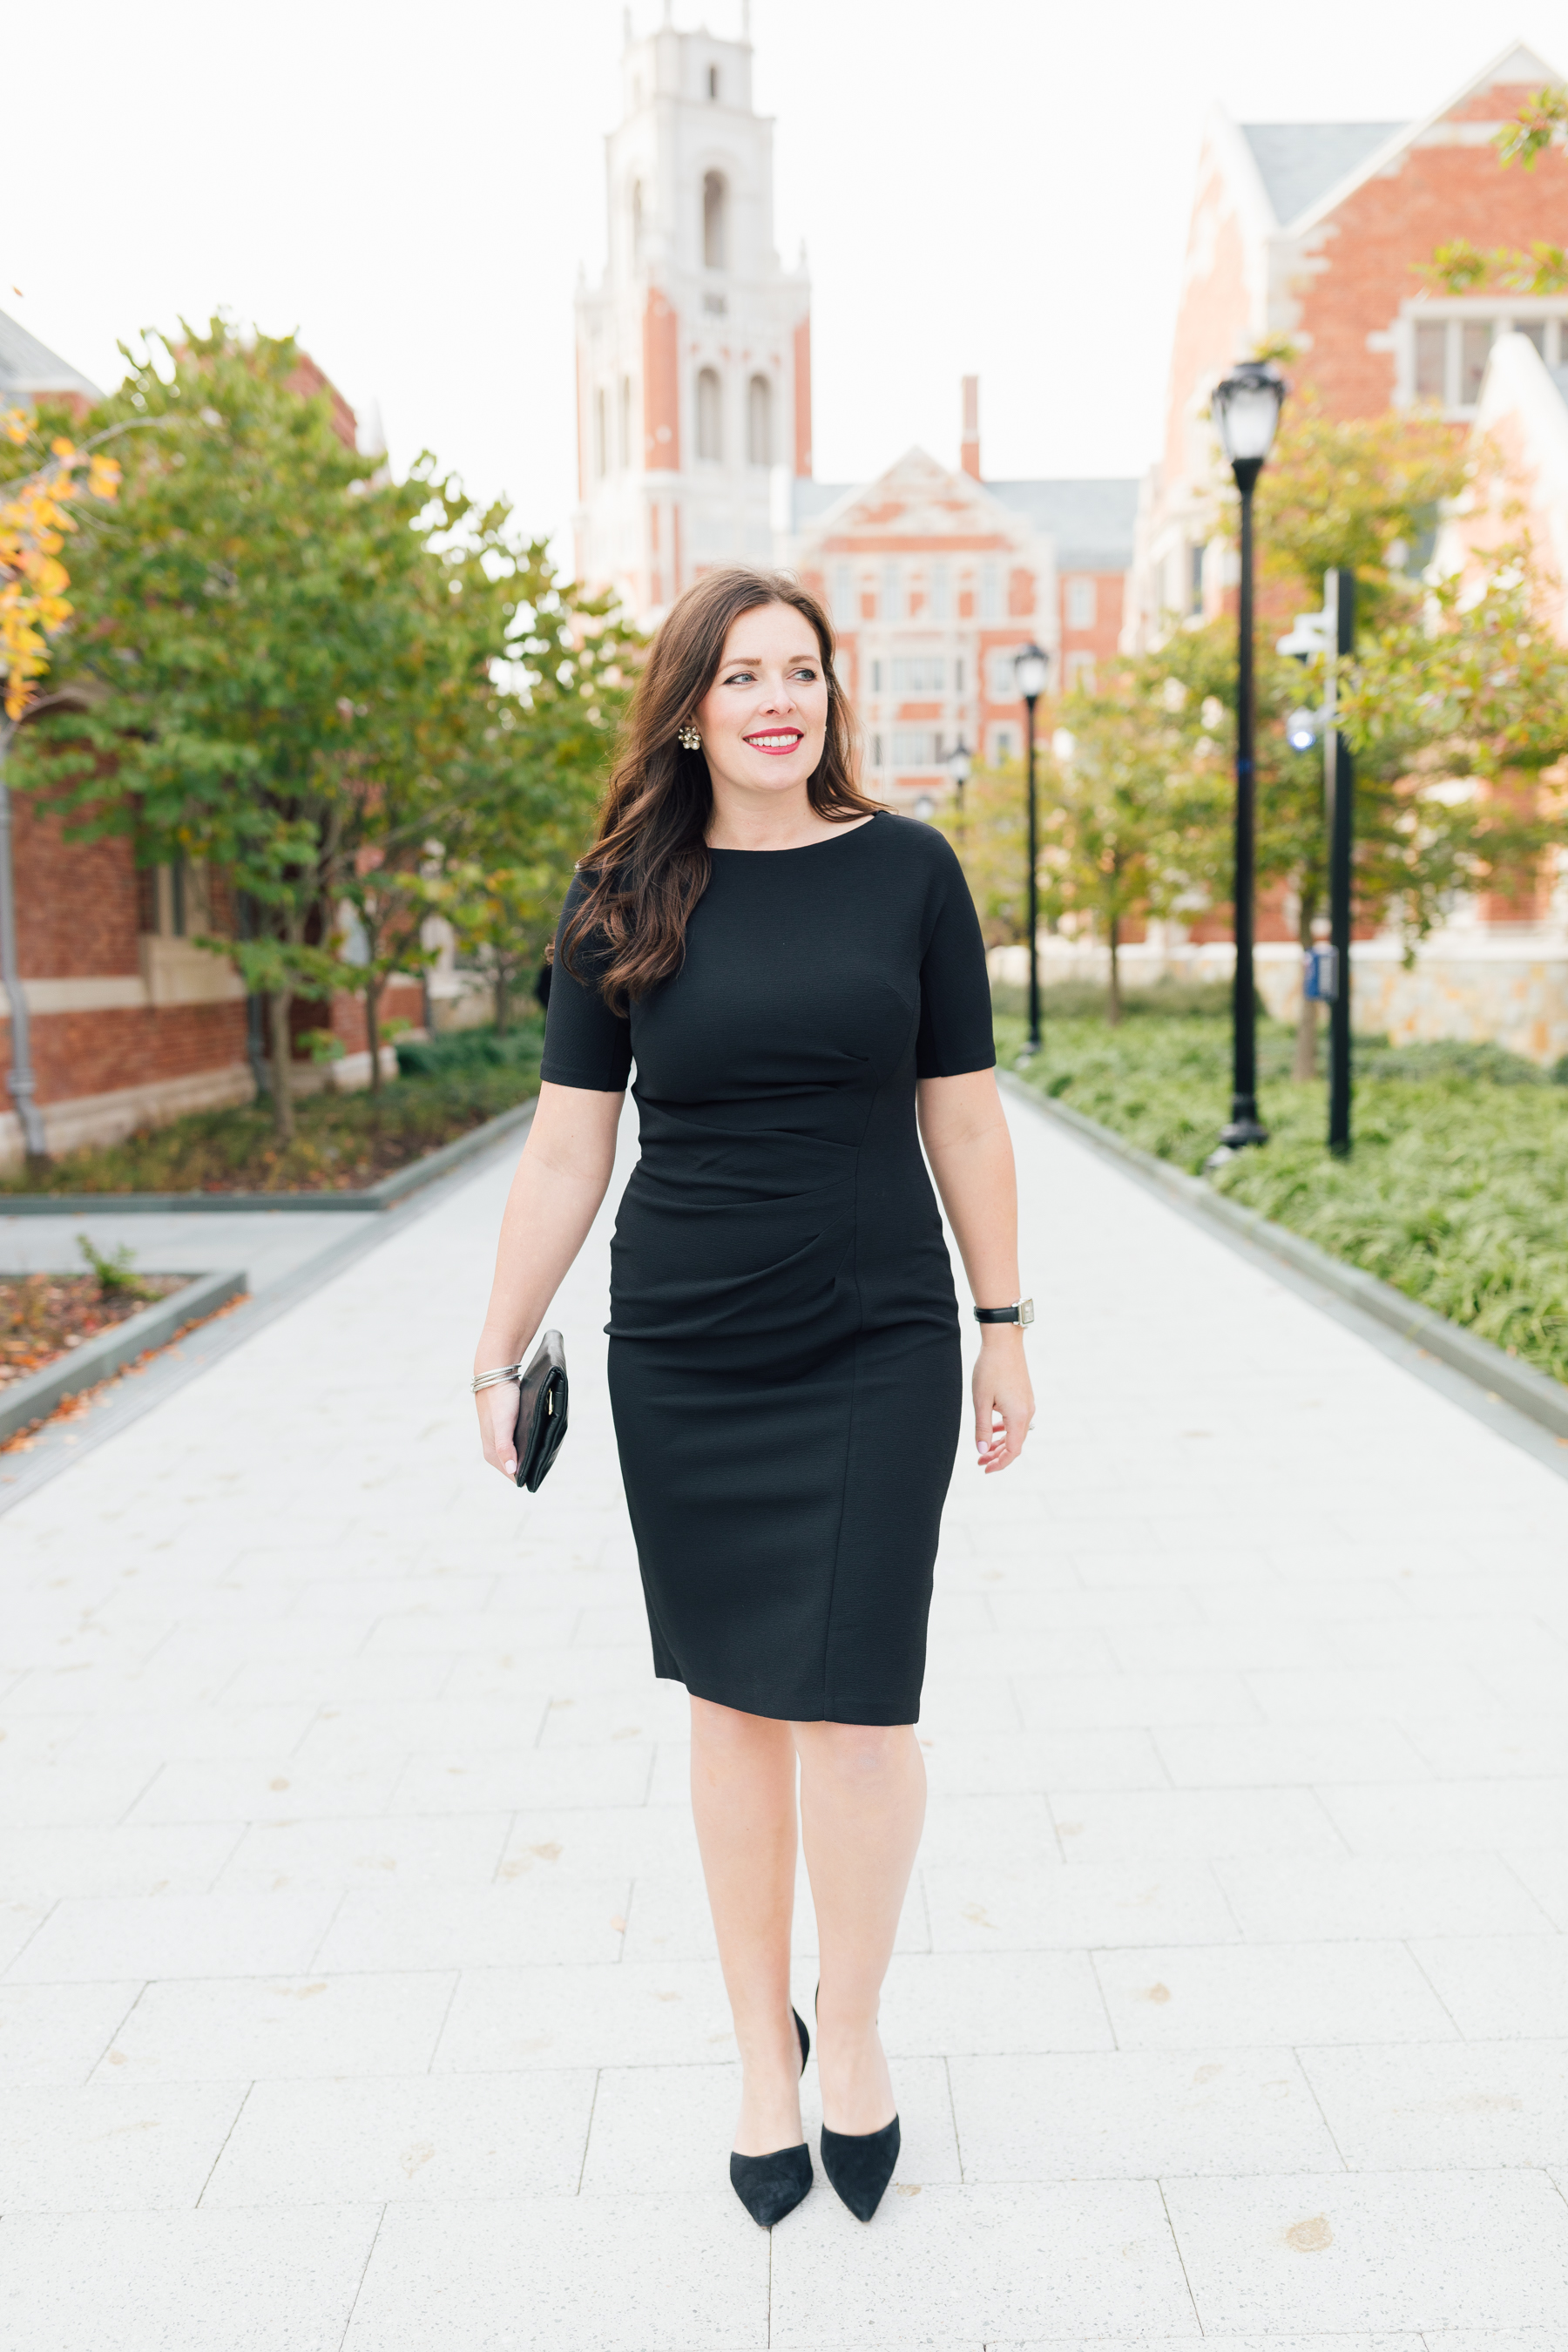 The Gigi Dress - If there's anything you need in your wardrobe, it's a classic little black dress. Easy in a pinch and perfect for every occasion, you can't go wrong with an LBD.As seen on Elizabeth, Author of Hard Alee